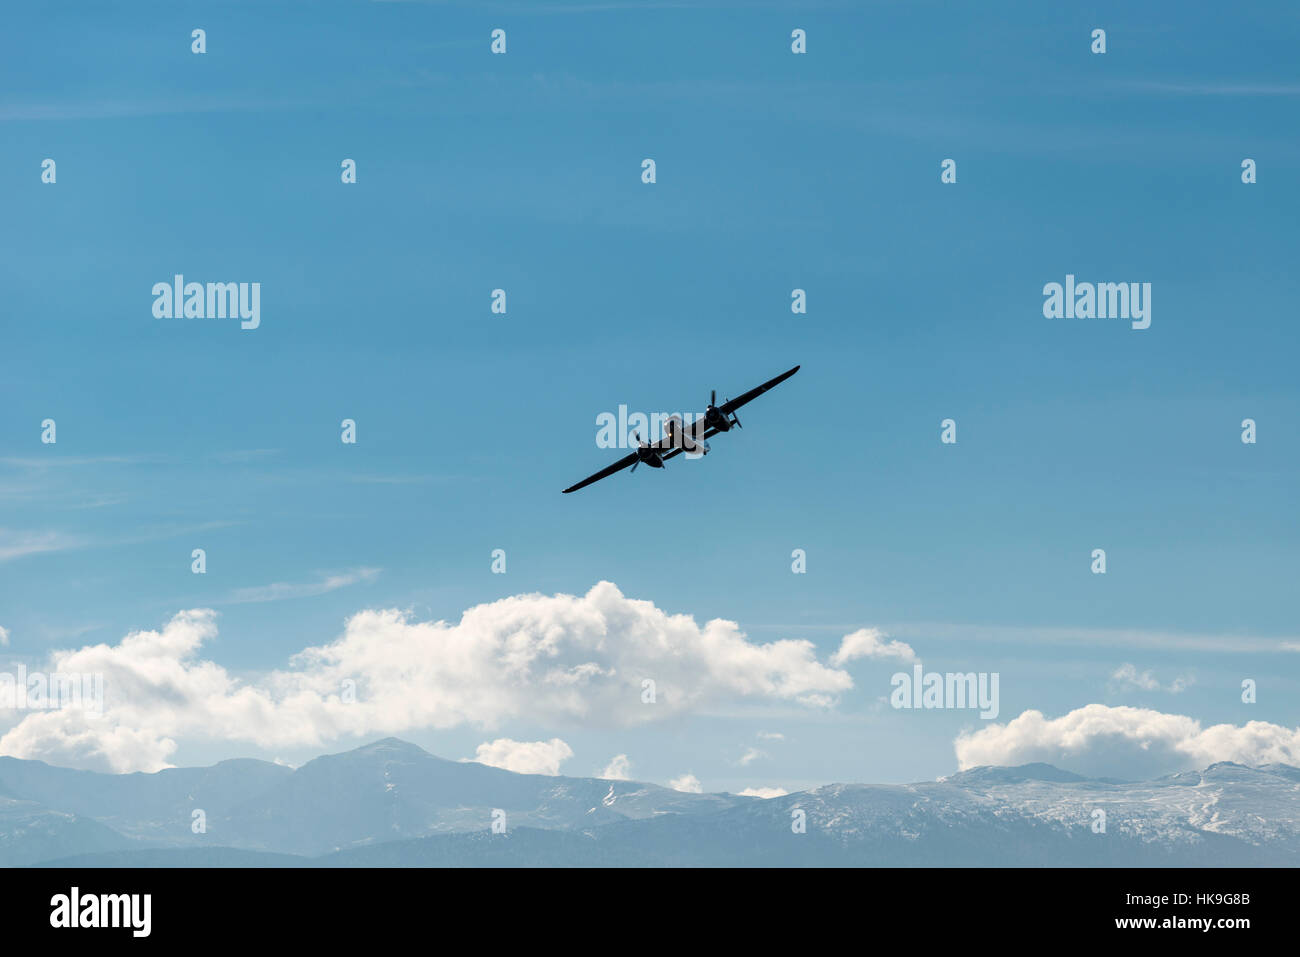 An airoplane B-25 Mitchell is flying in the air, mountains and clouds in the distance - Stock Image